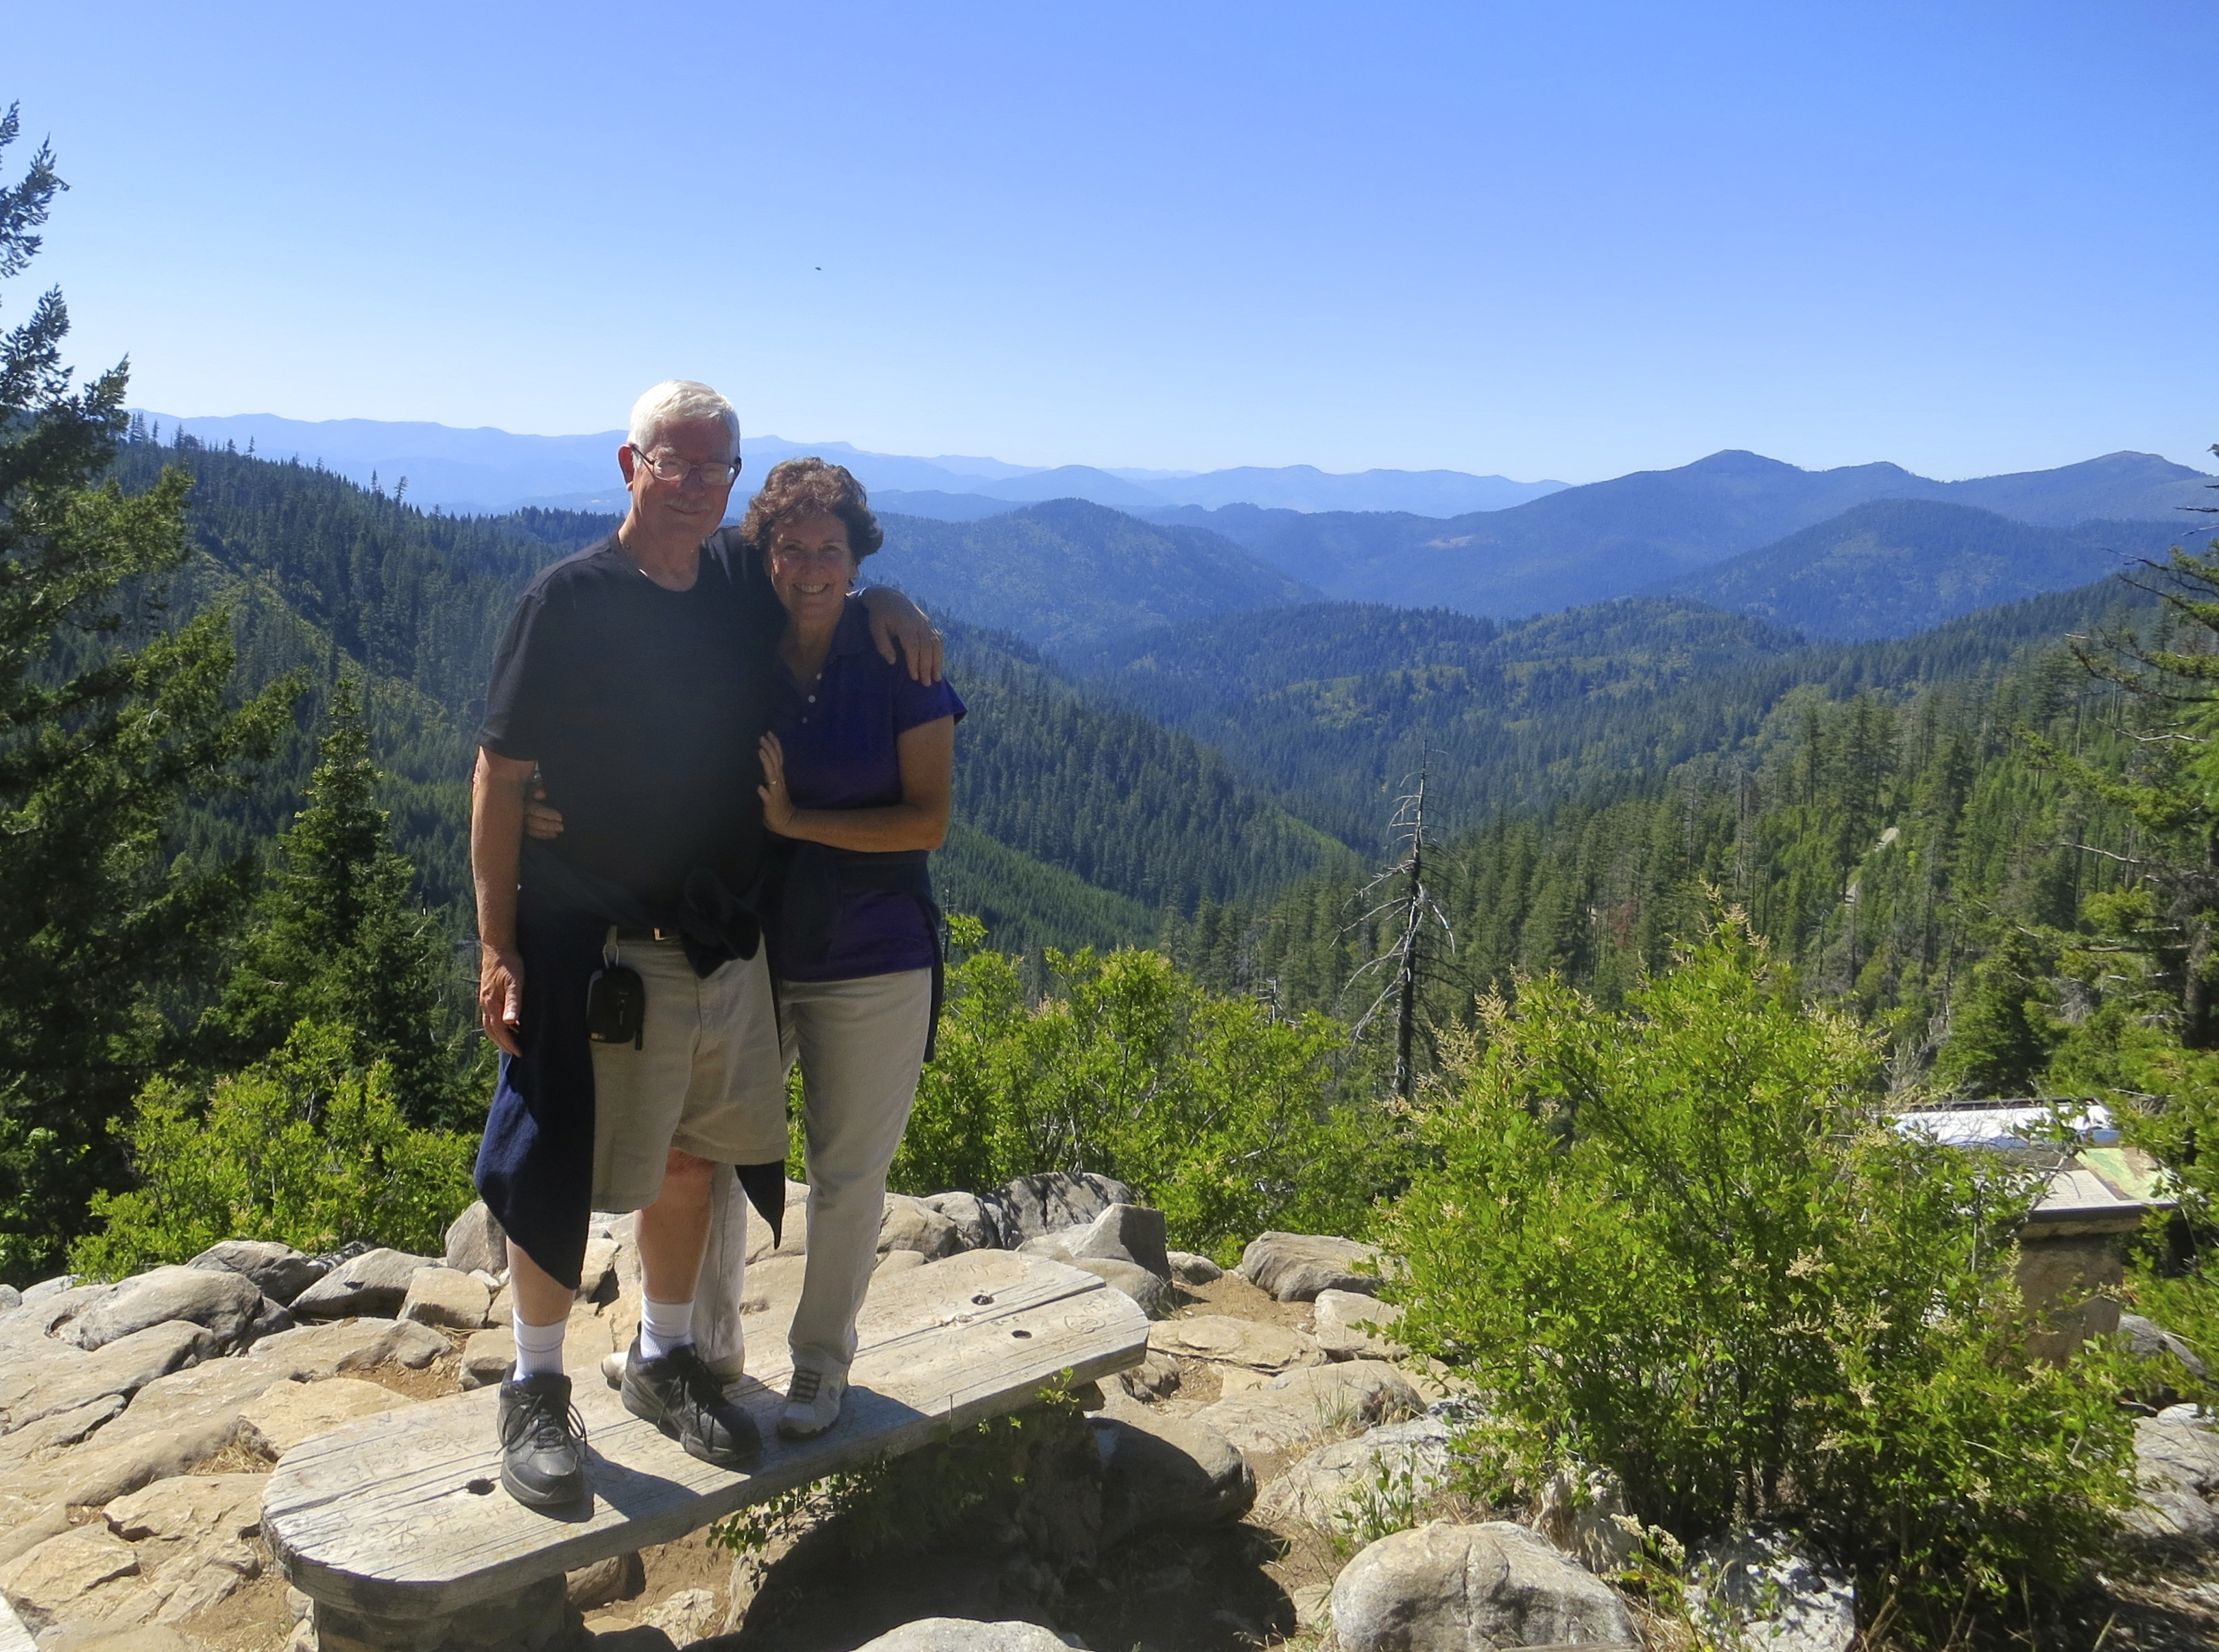 Standing on top of the mountain that contains Oregon Caves National Monument.